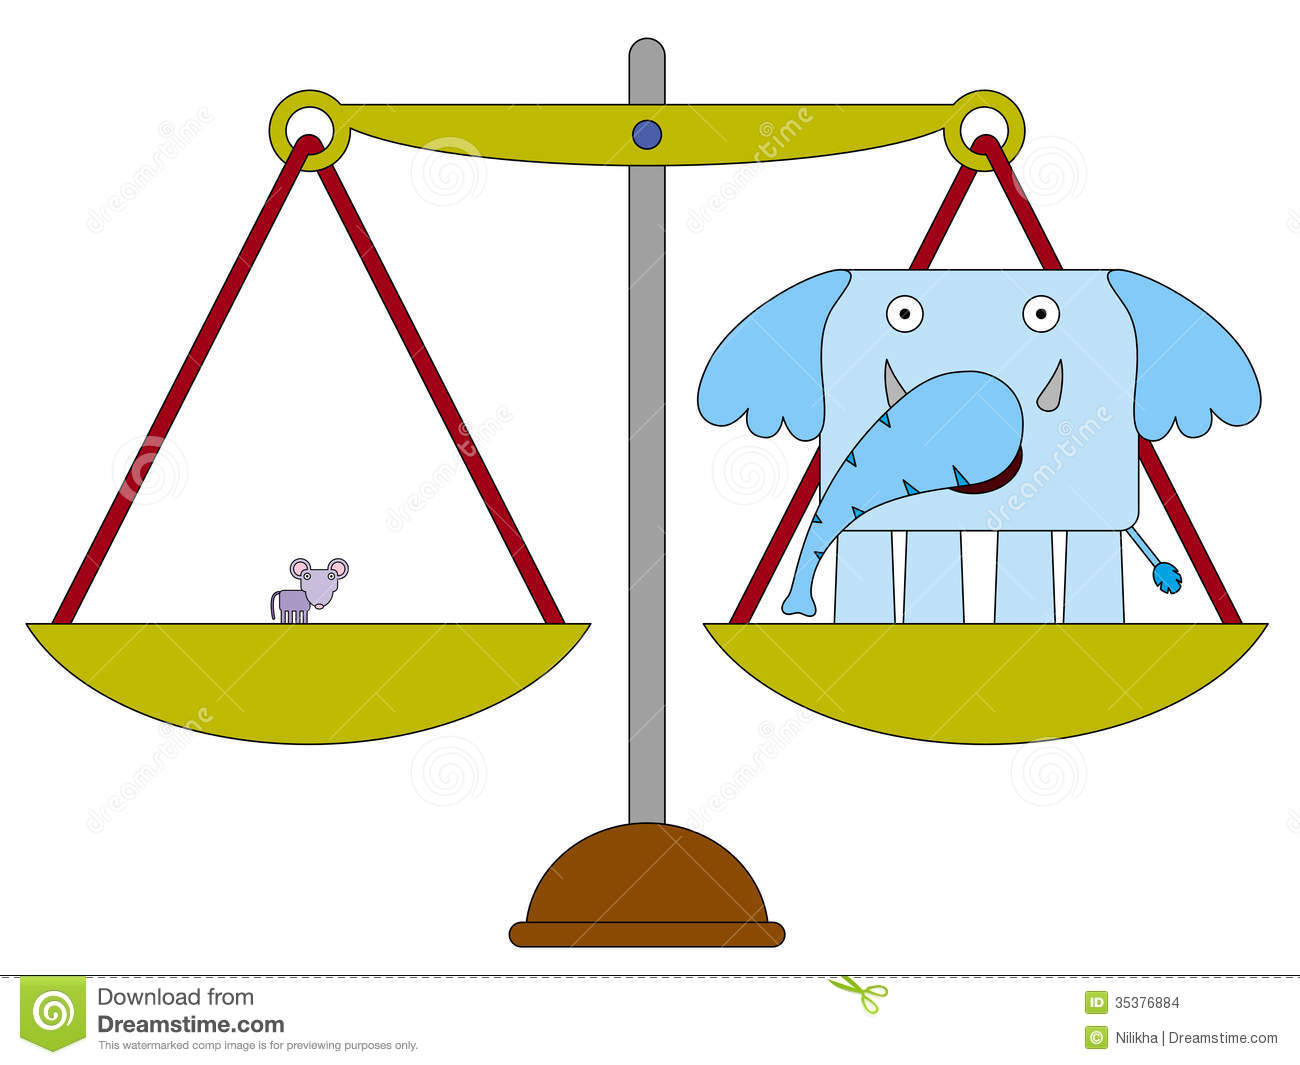 Weighing machine clipart animals clip art library library Balance Scales Clipart | Free download best Balance Scales ... clip art library library